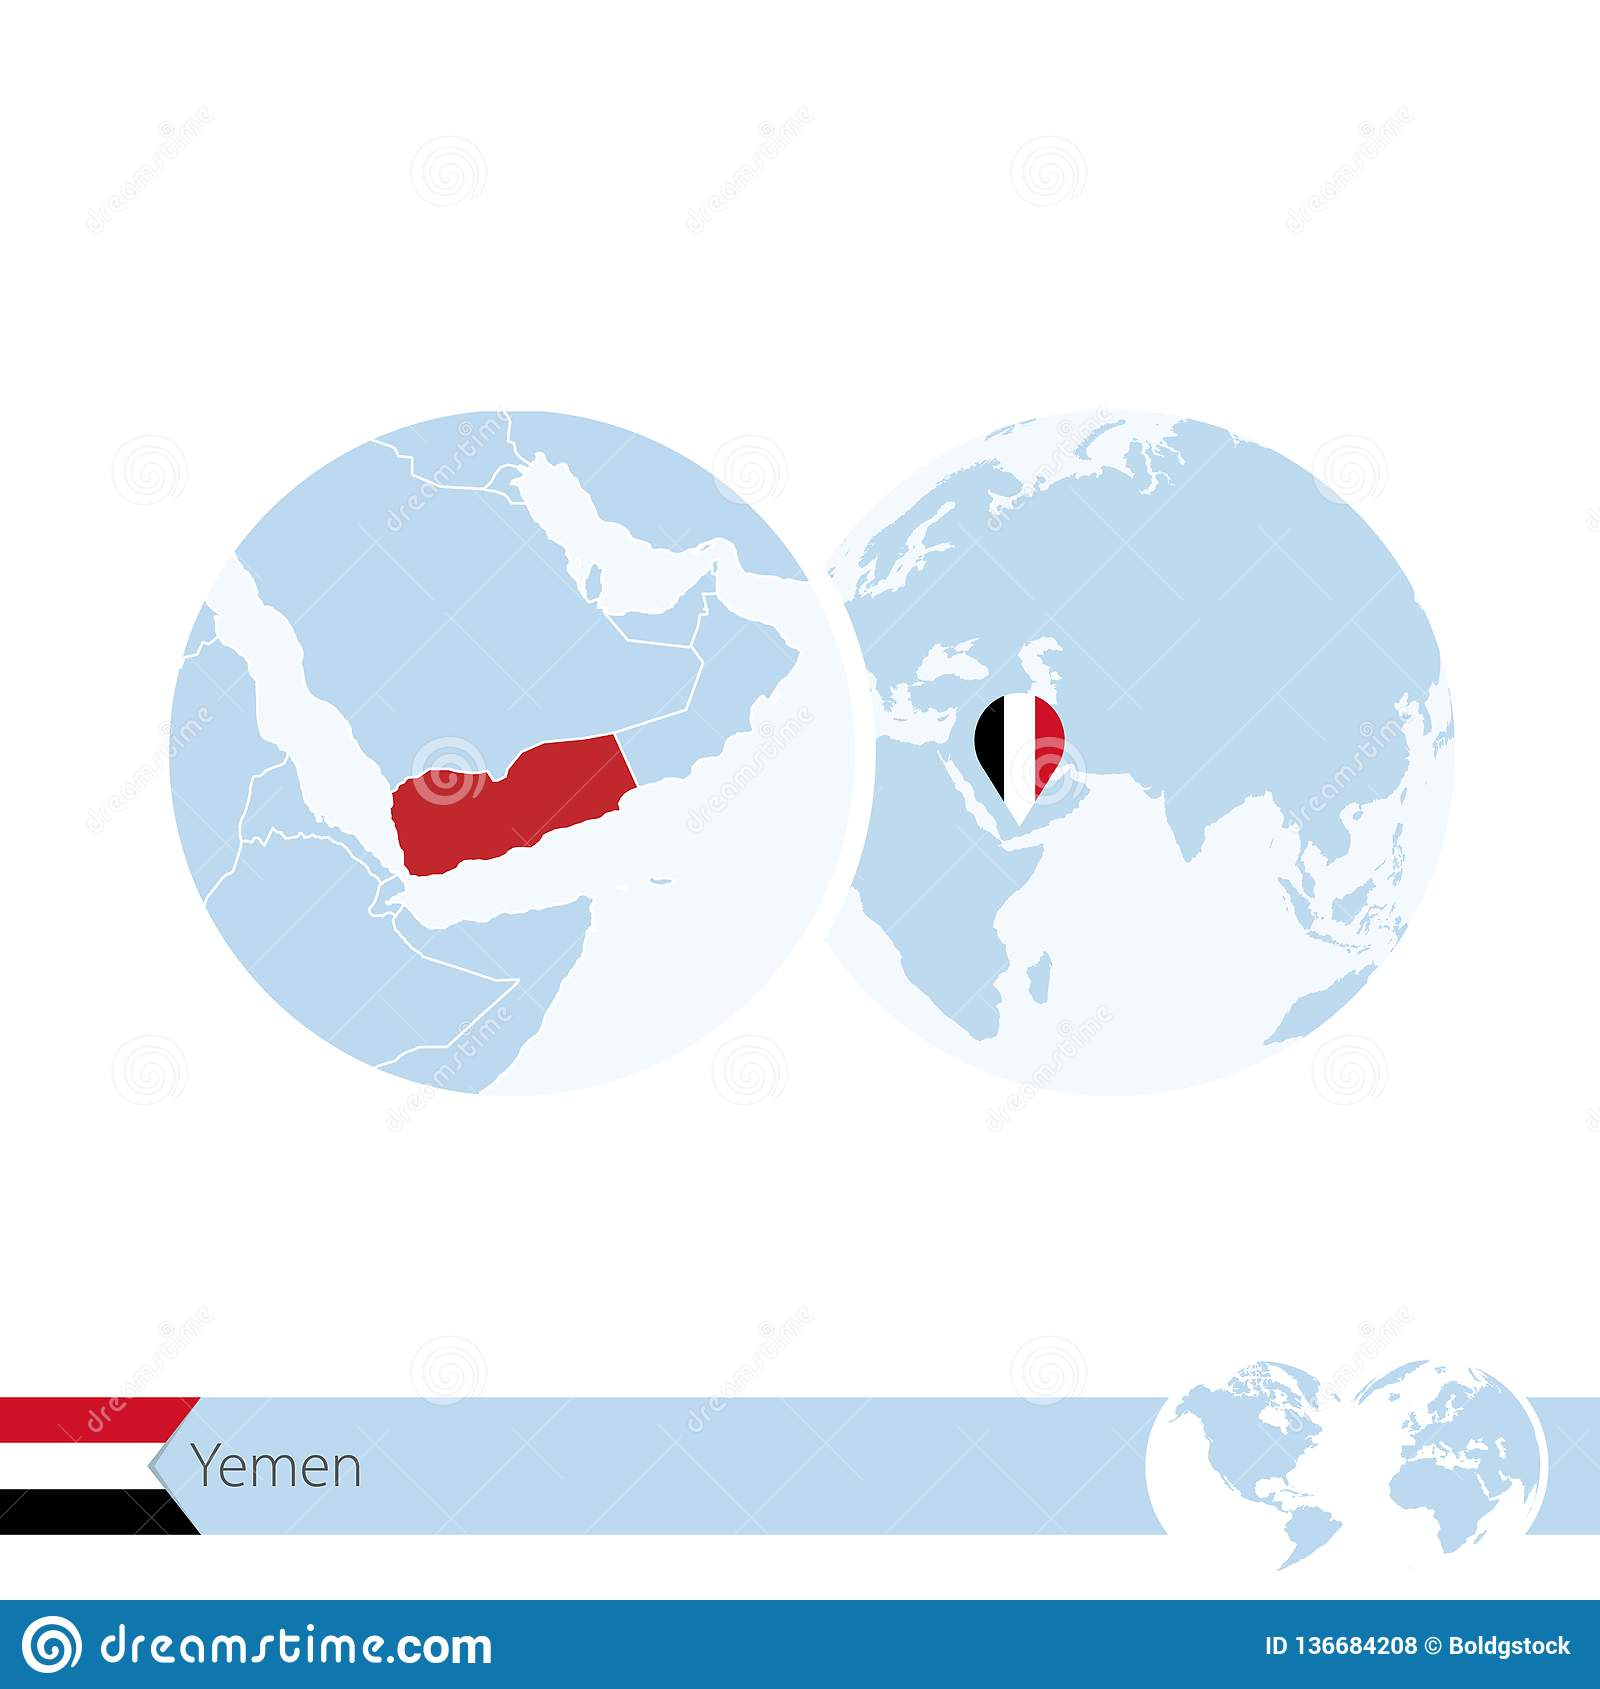 Yemen On World Globe With Flag And Regional Map Of Yemen Stock